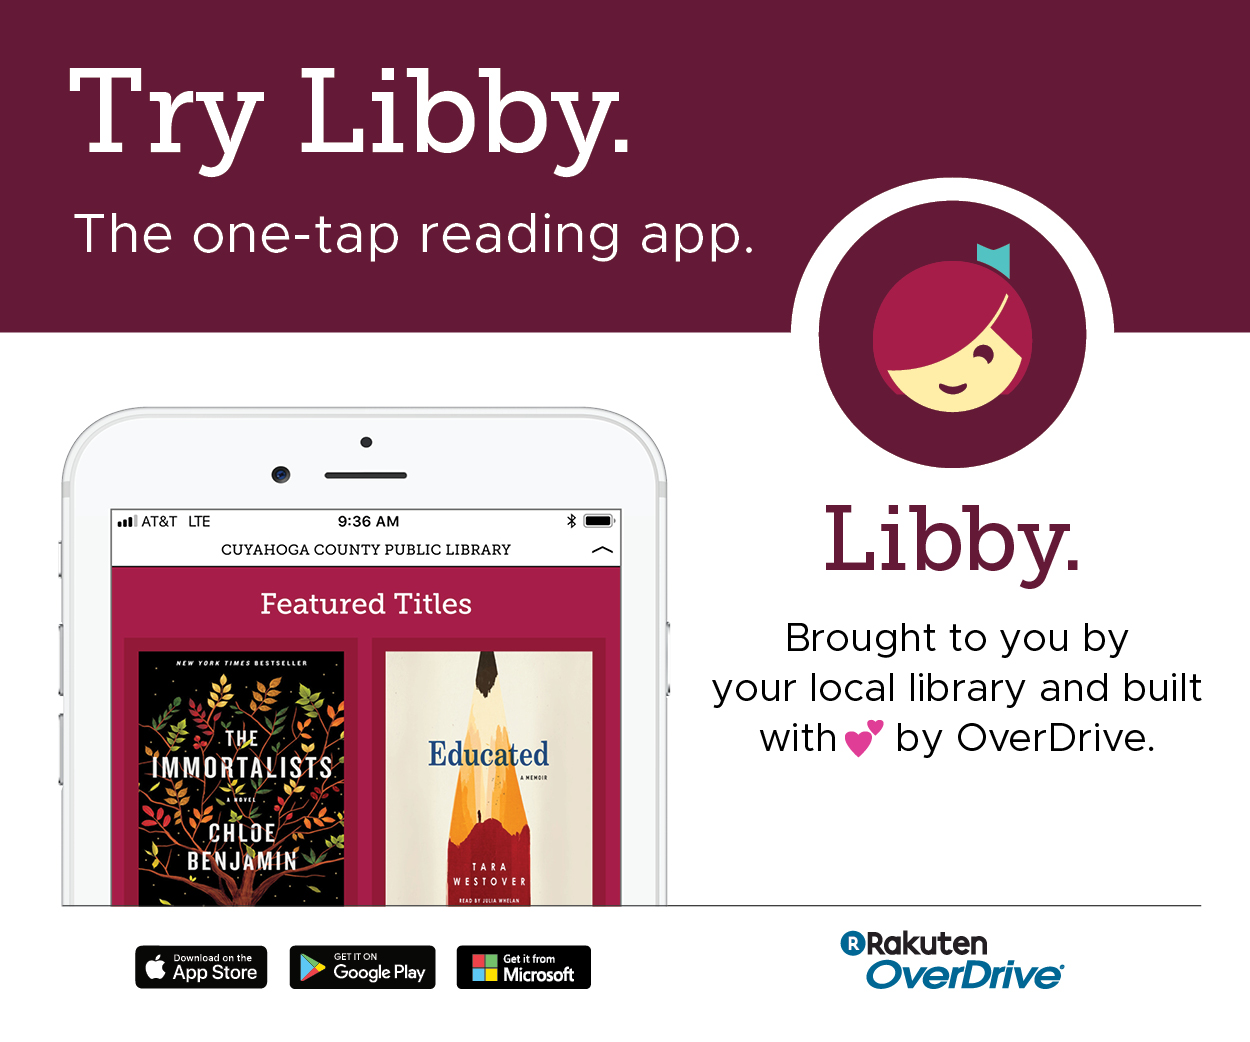 Try Libby the ebook app